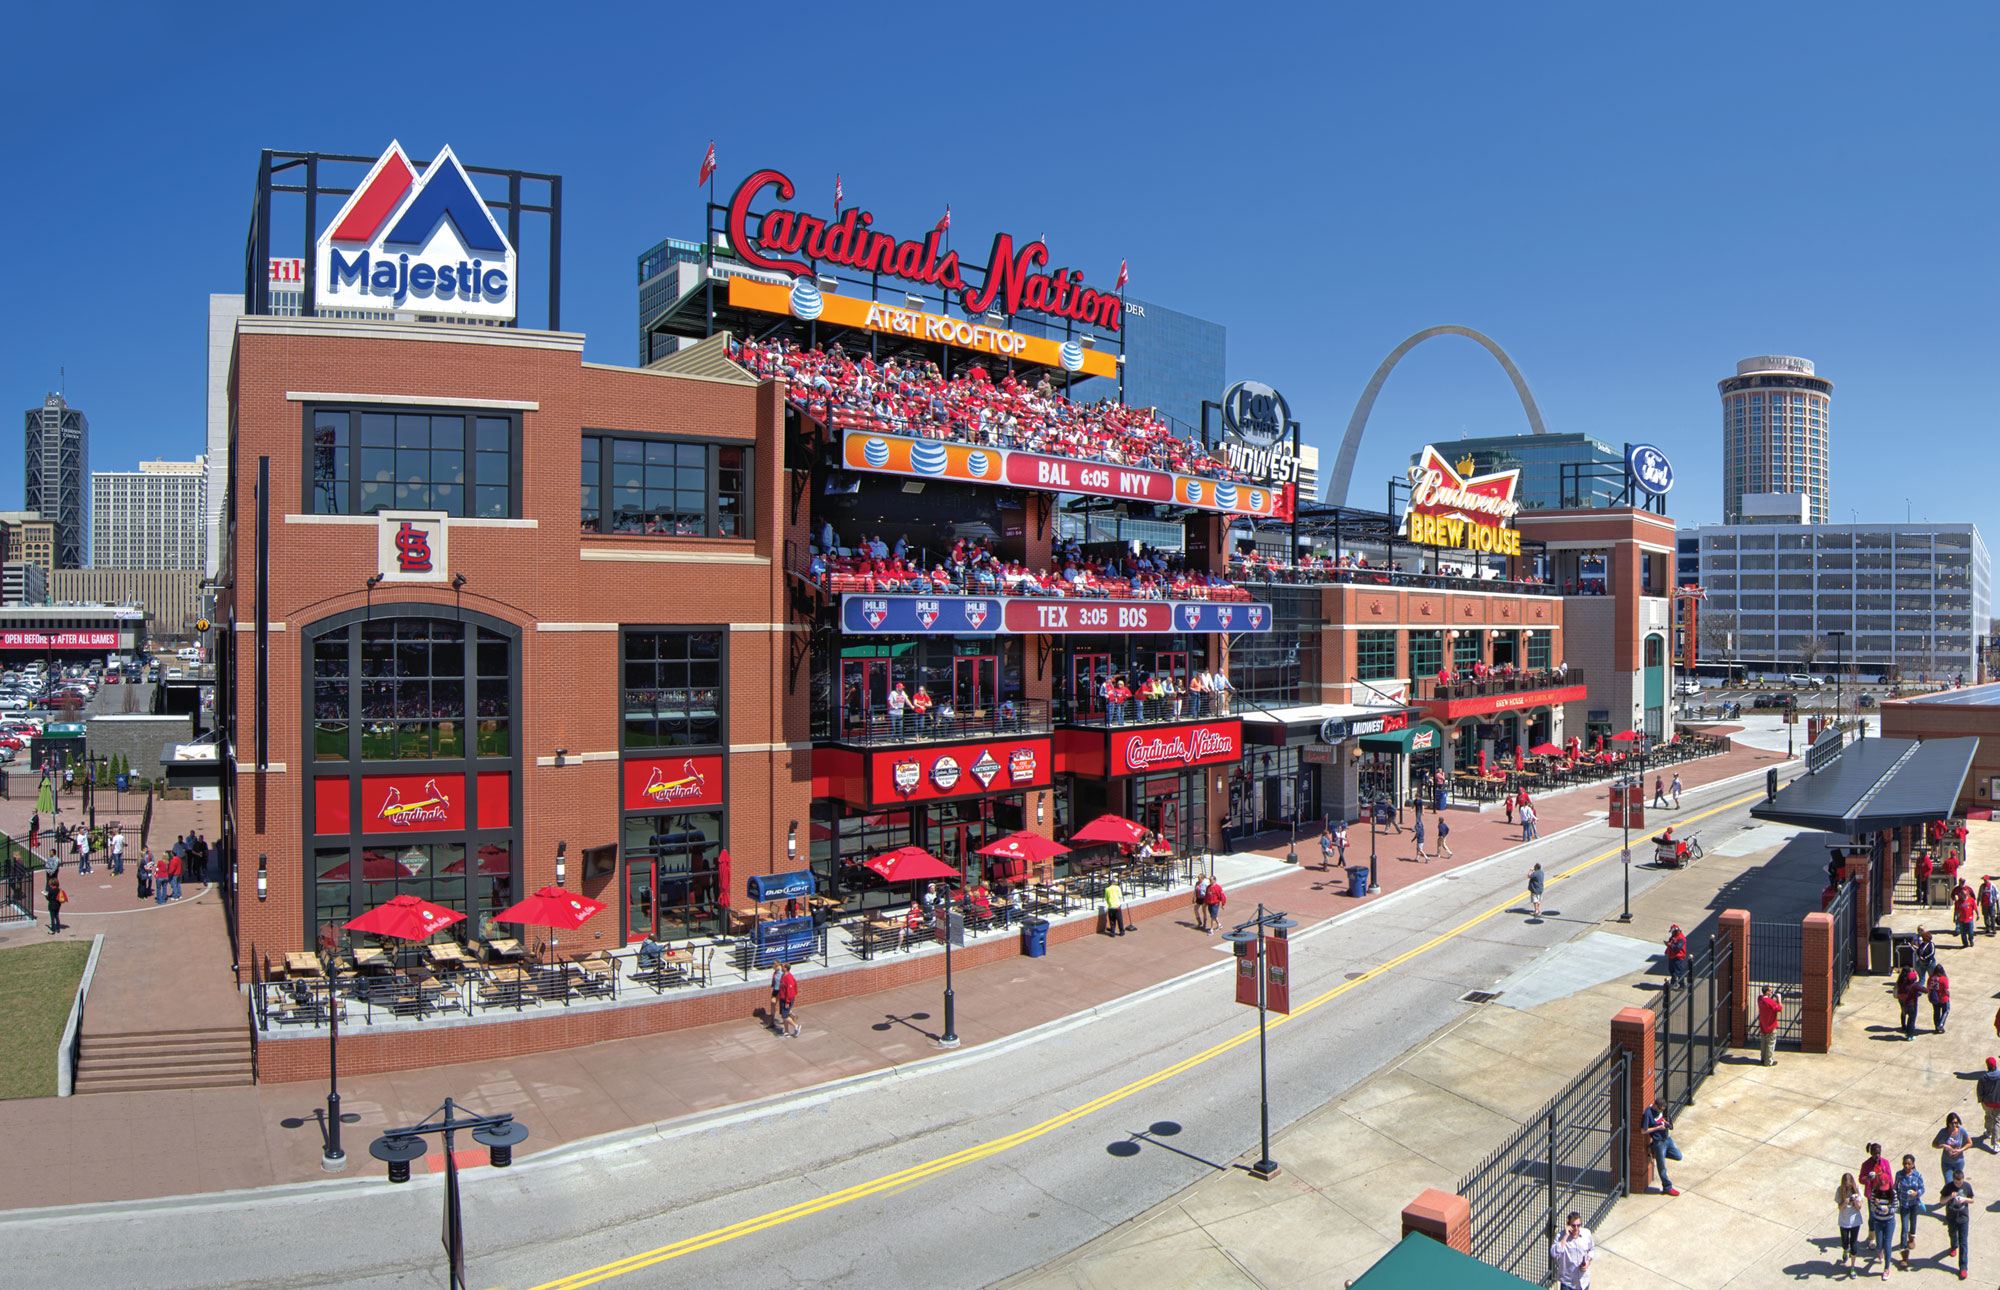 Ballpark Village entertainment destination in downtown St. Louis, MO constructed by PARIC Corp.